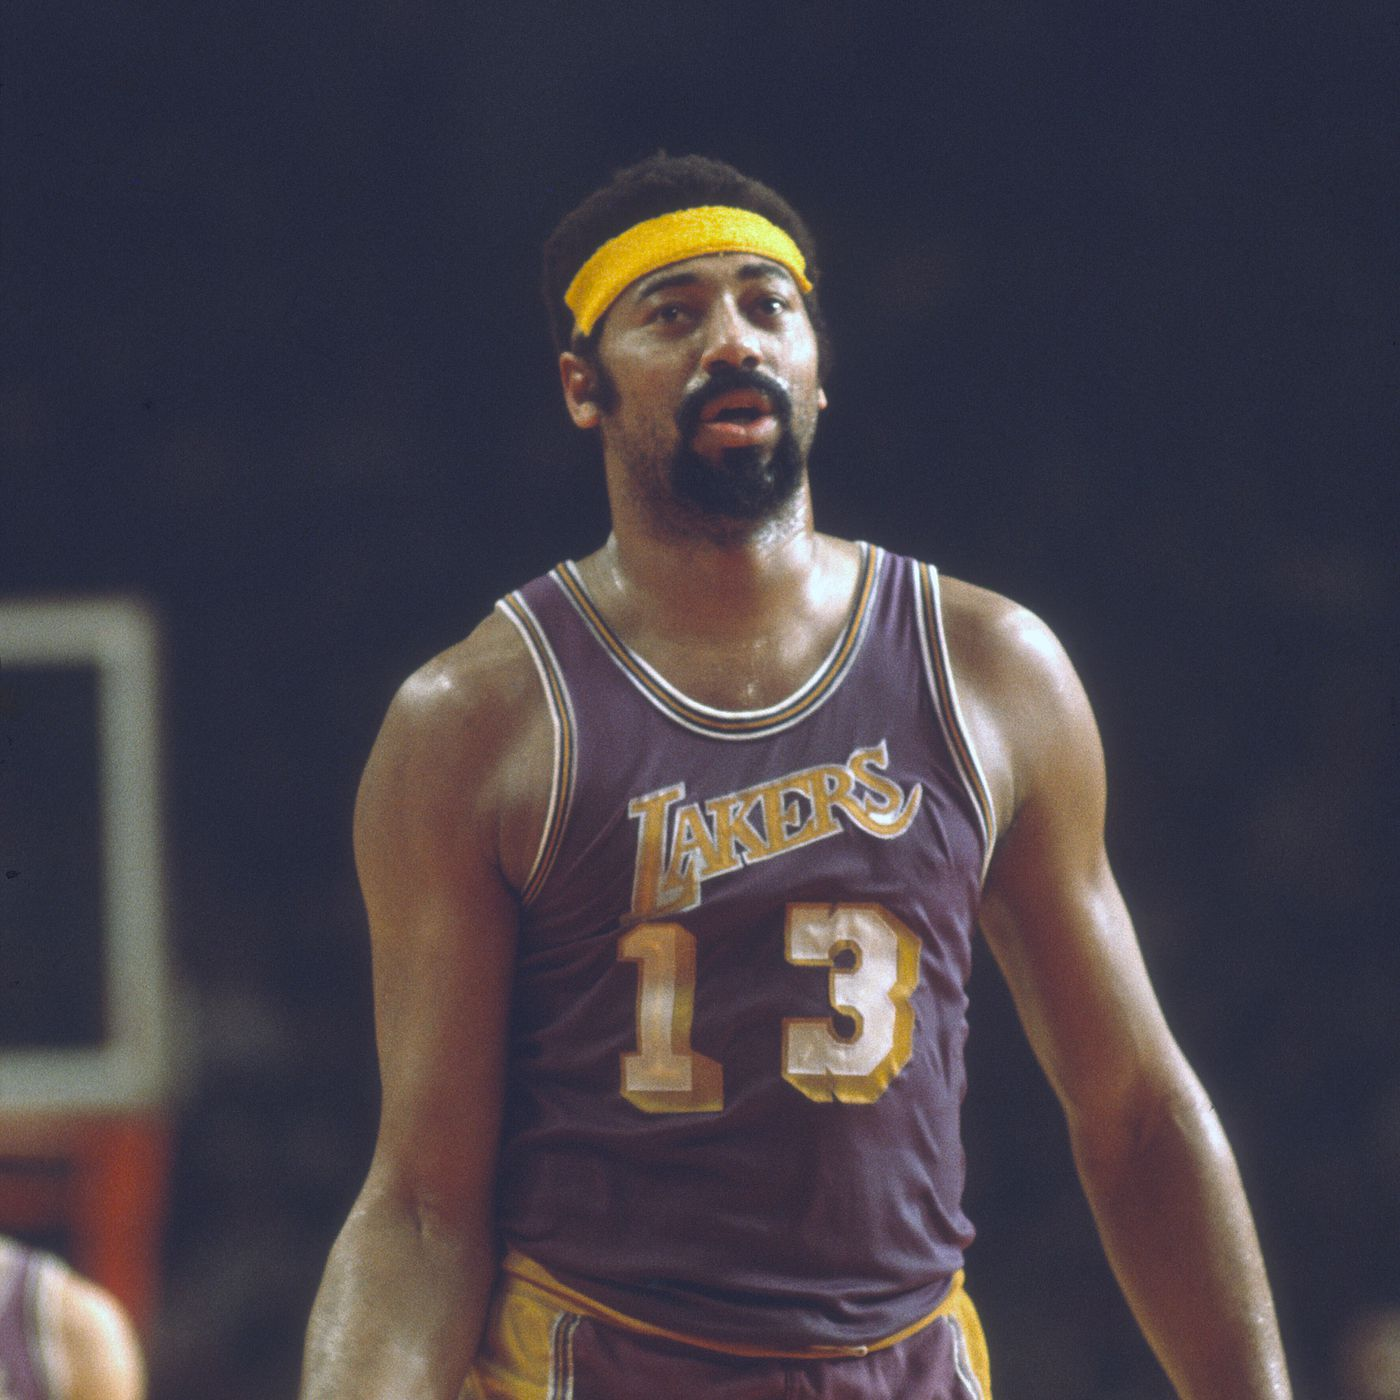 You Tube Gold: Even In His 30's, Wilt Chamberlain Was A Fearsome Opponent - Duke Basketball Report